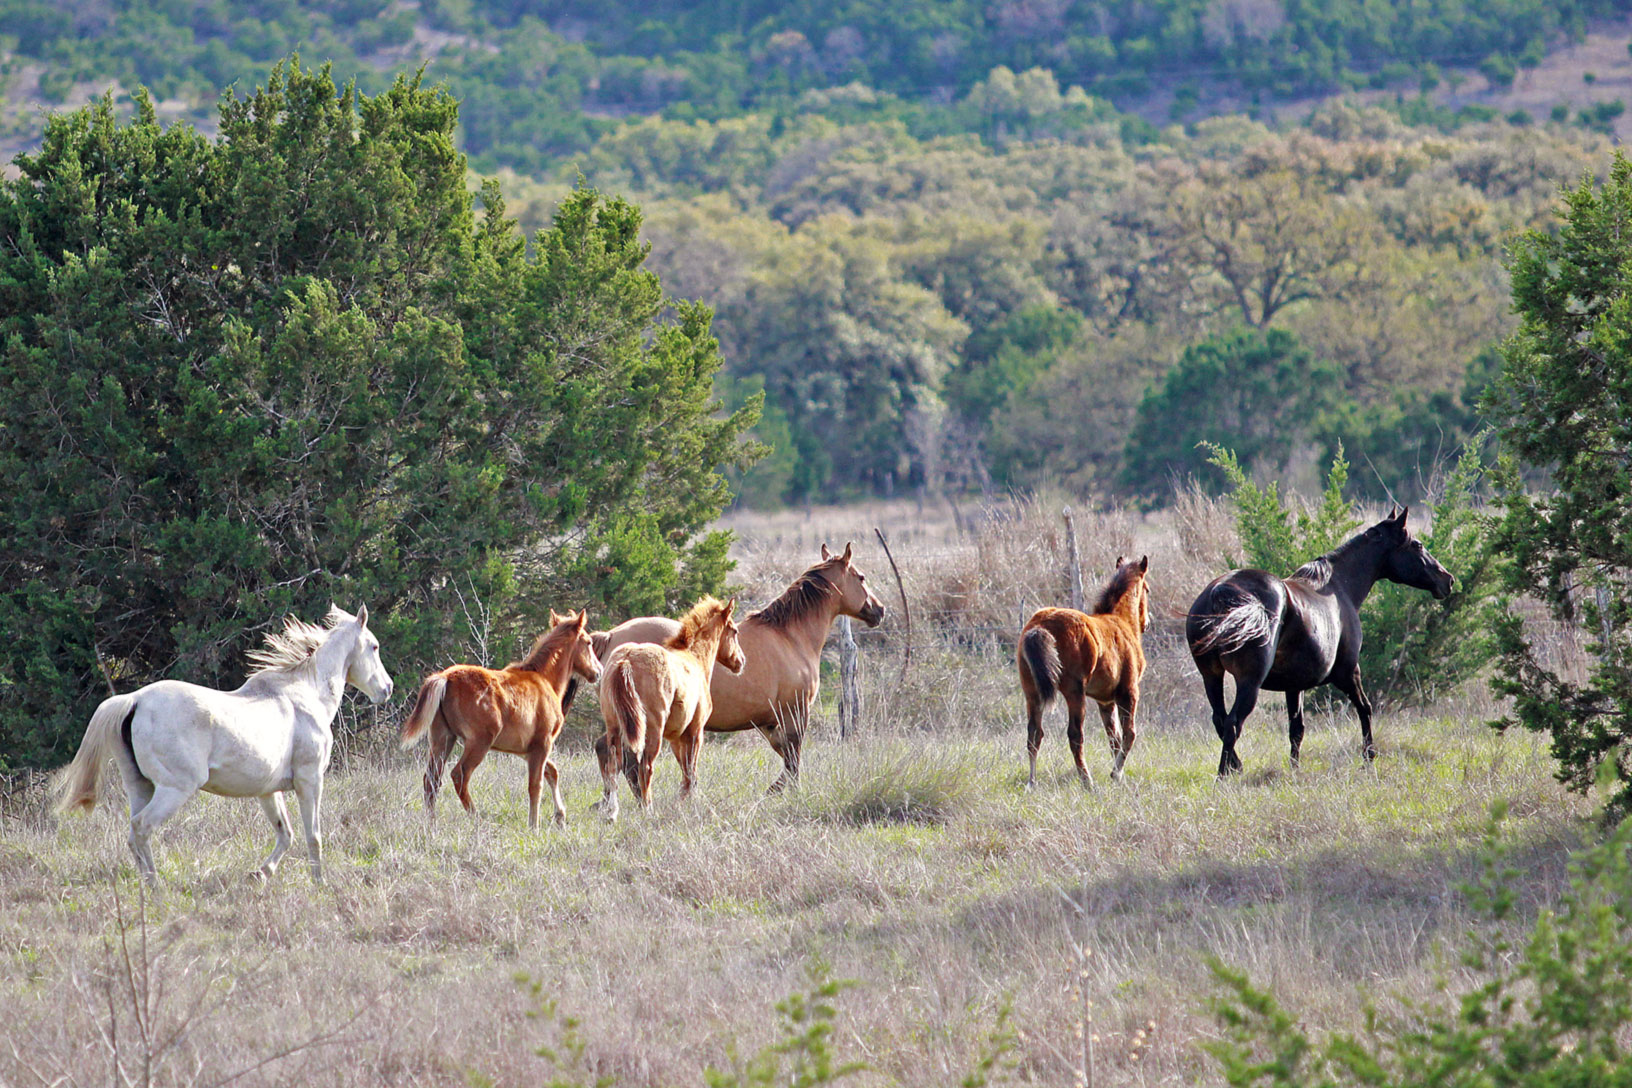 Mares and foals trotting in the pasture